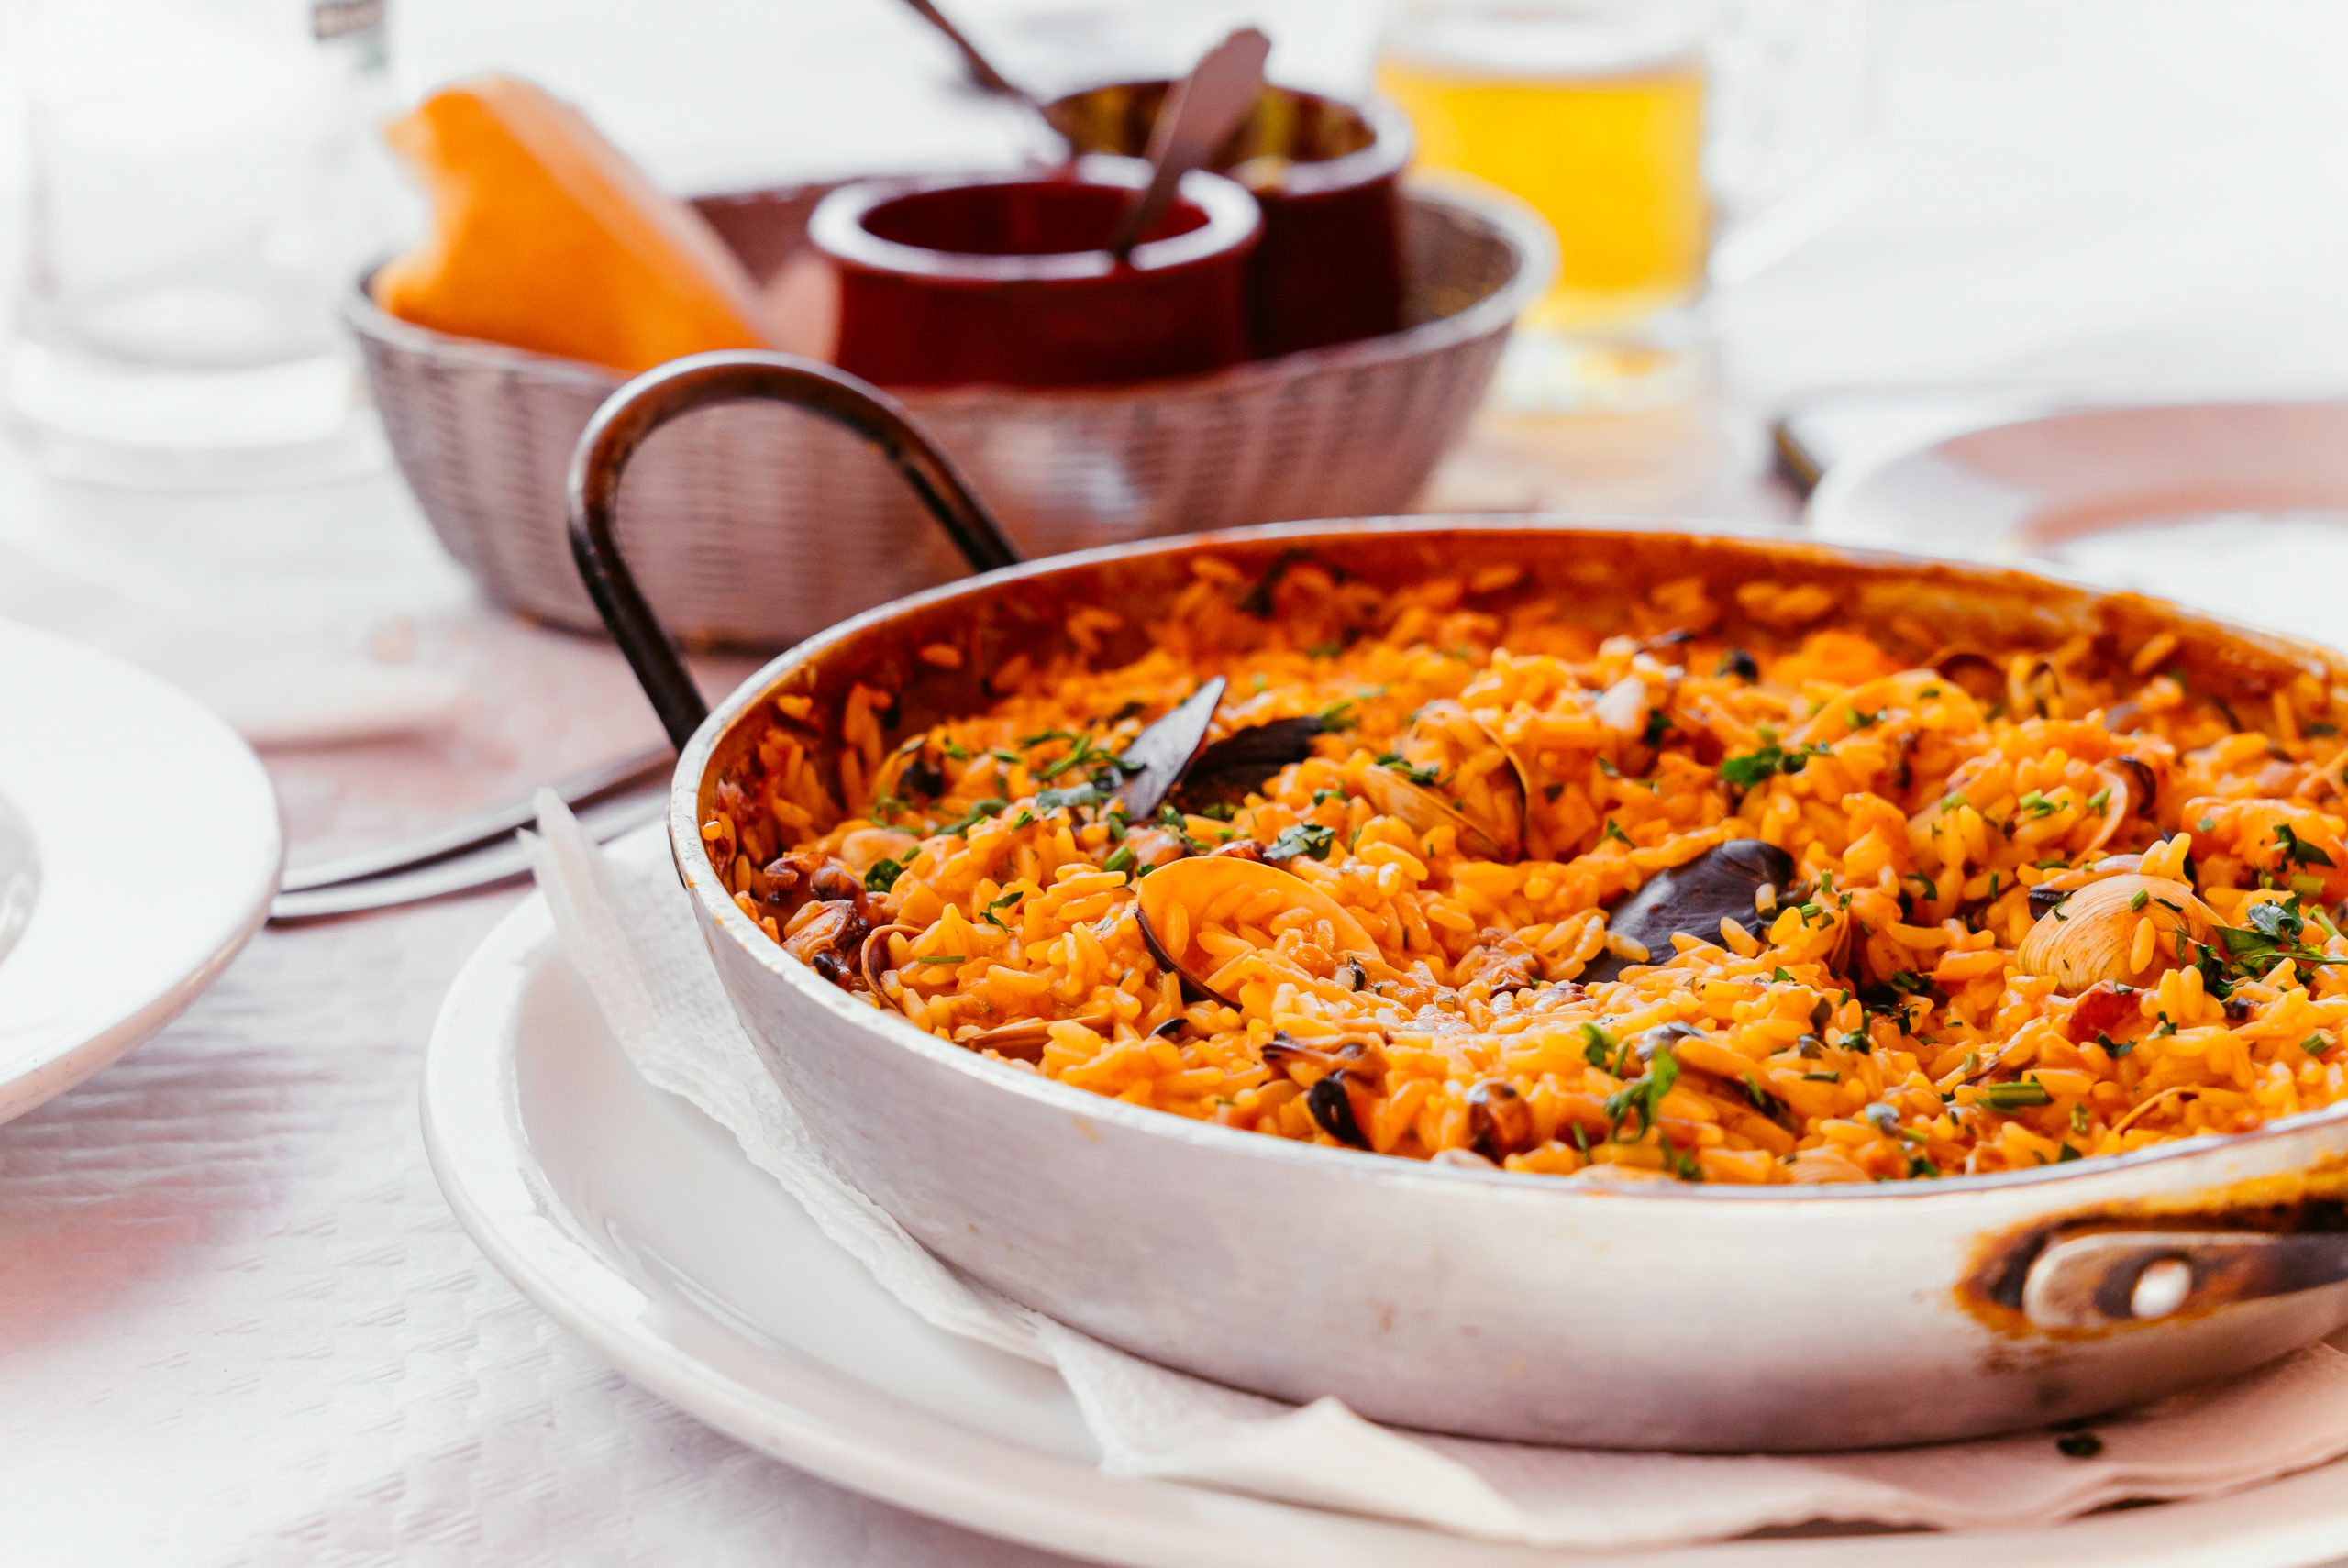 spanish seafood paella with mussels shrimps etc in steel paella pan canary islands cousine in small family restaurant scaled - Los mejores mariscos para una buena paella